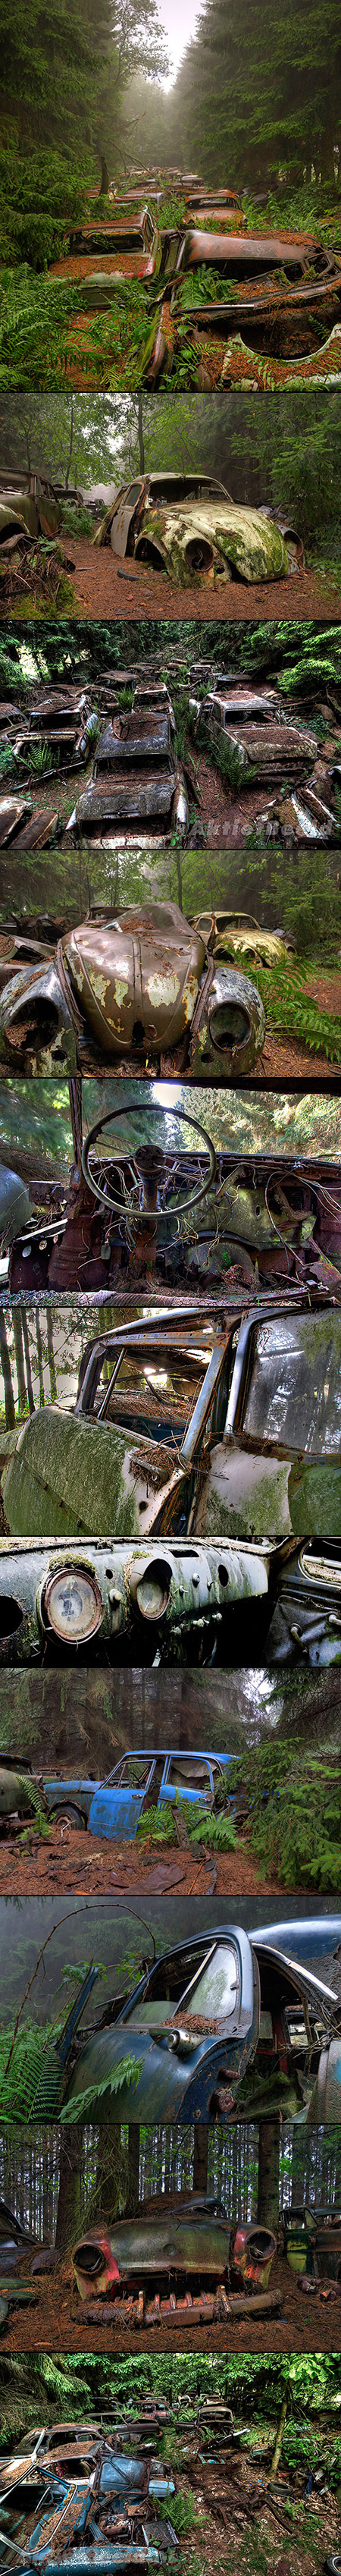 "These spooky apocalyptic images are not a scene from ""Walking Dead"", they were actually taken at one of the biggest car cemeteries in the world – the Chatillion Car Graveyard, Belgium."